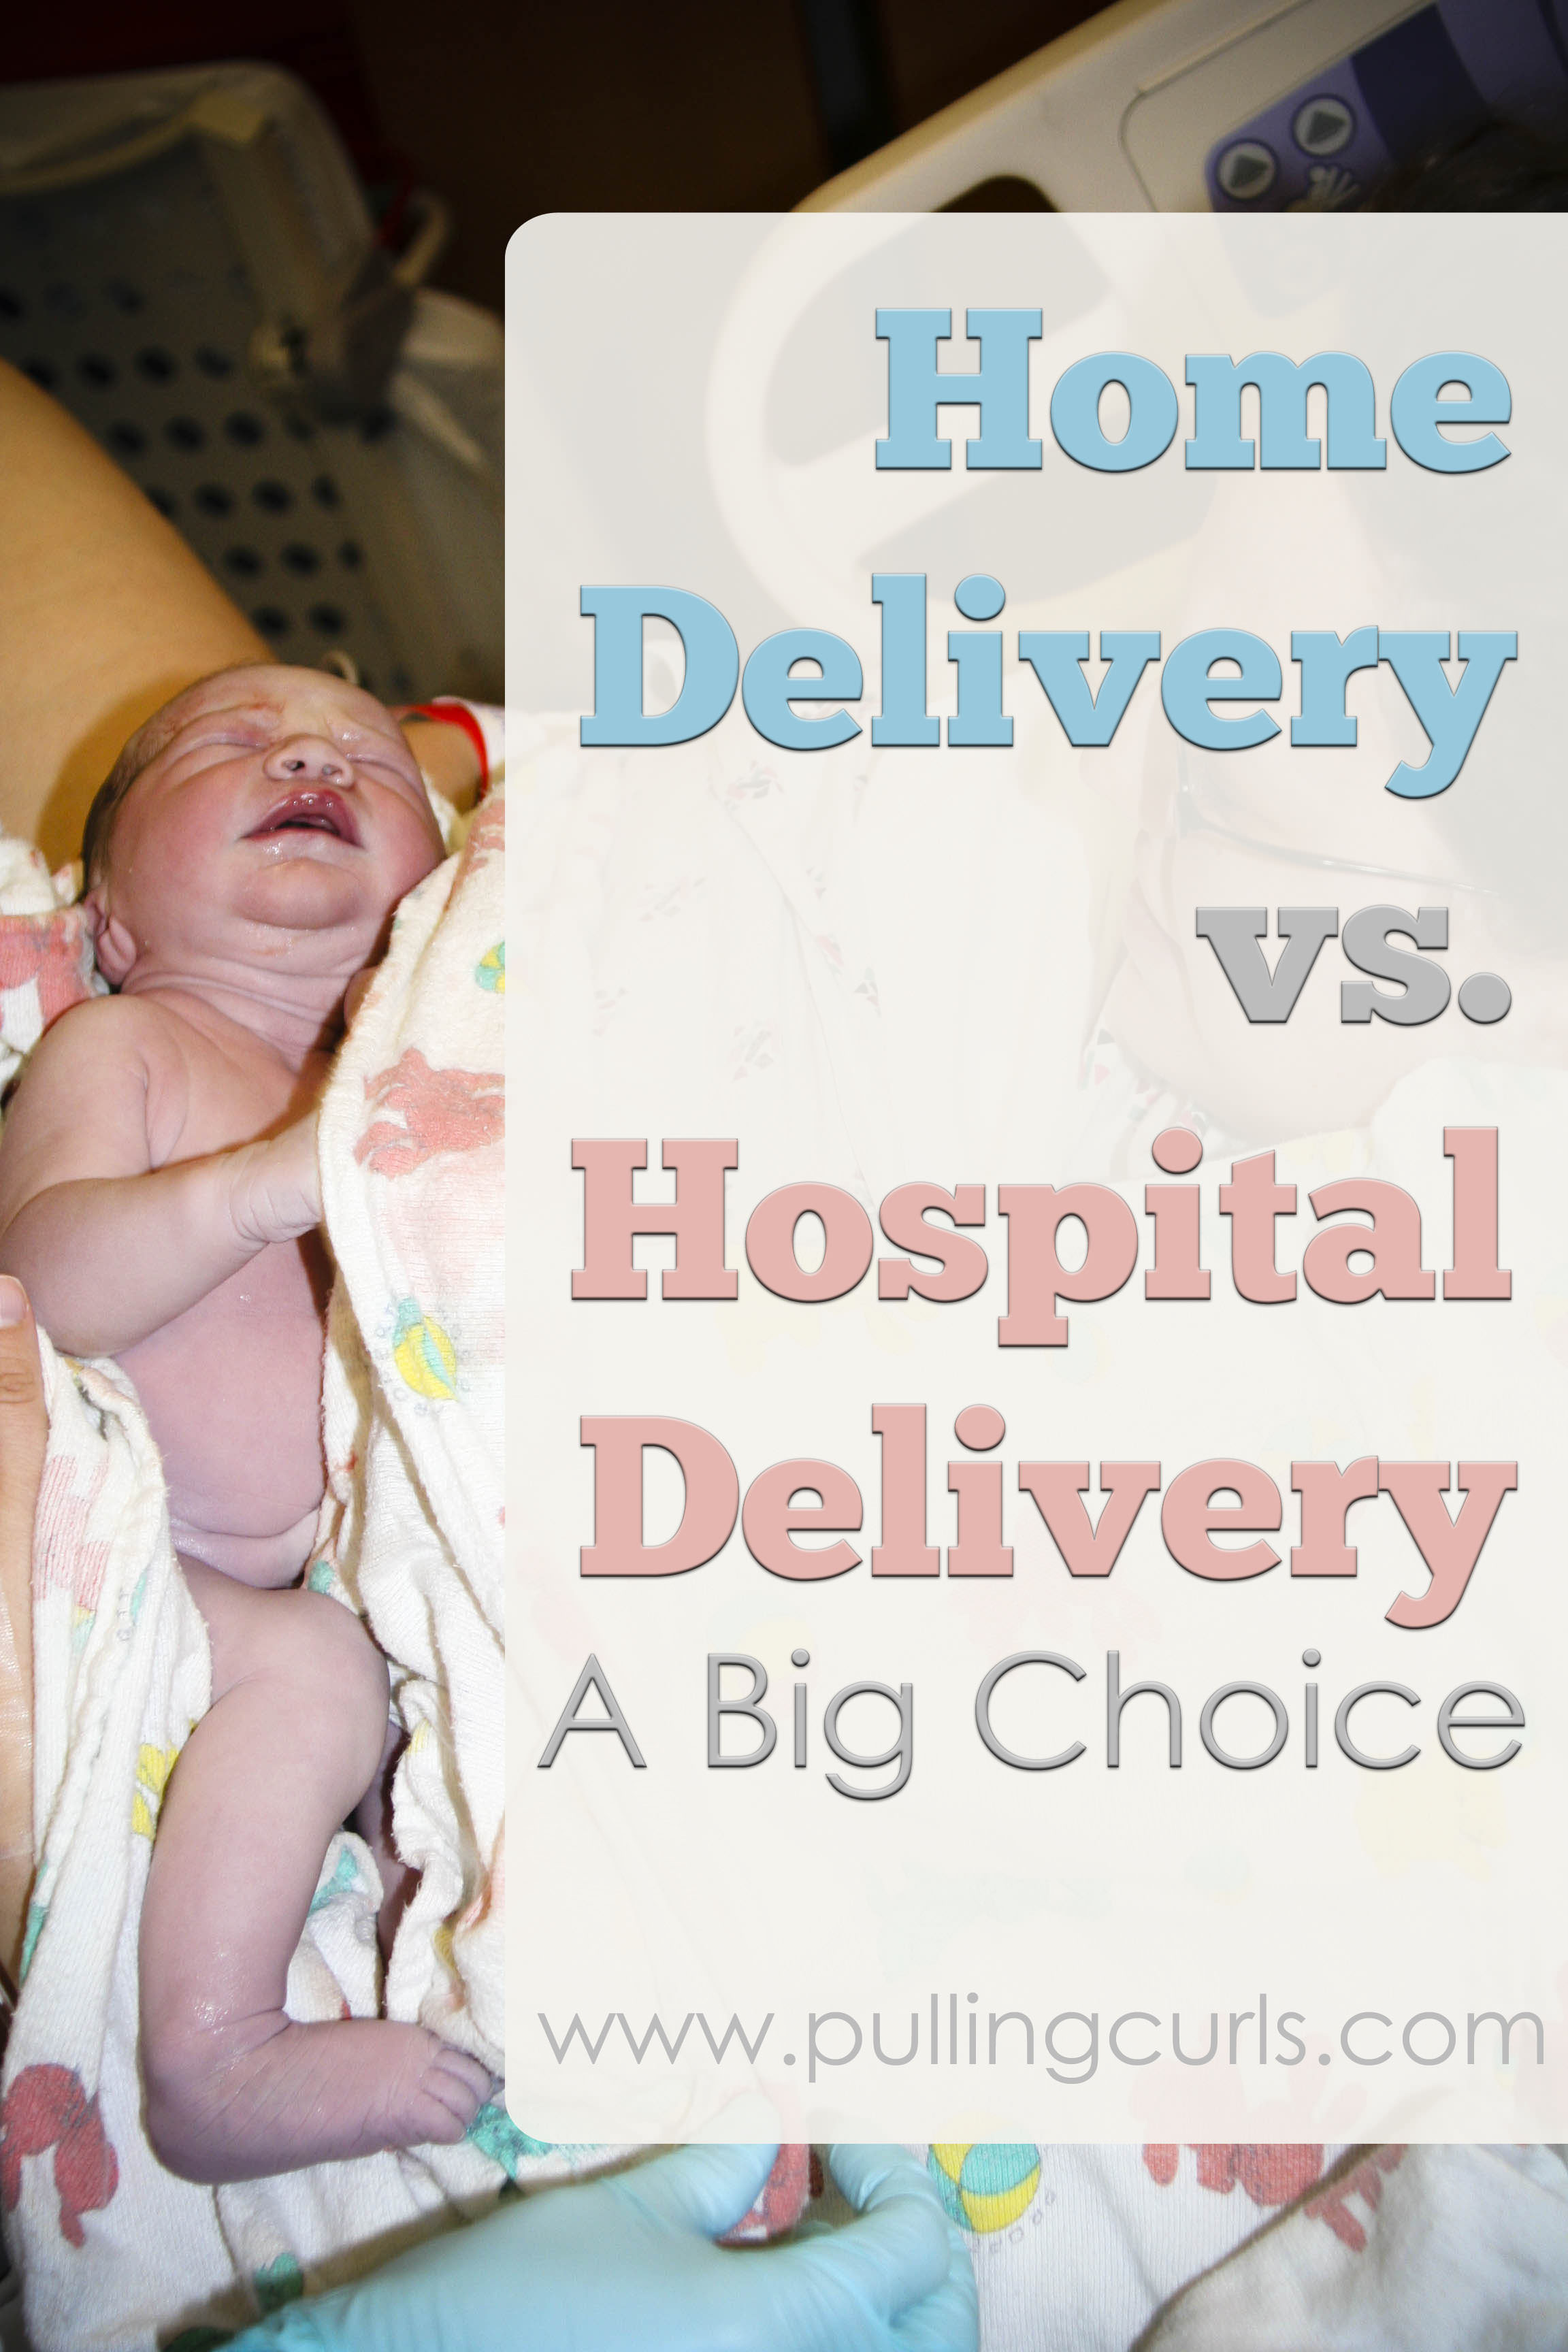 Home delivery | baby | Hospital | hospitals | mom | midwife | safety | newborn | pregnancy